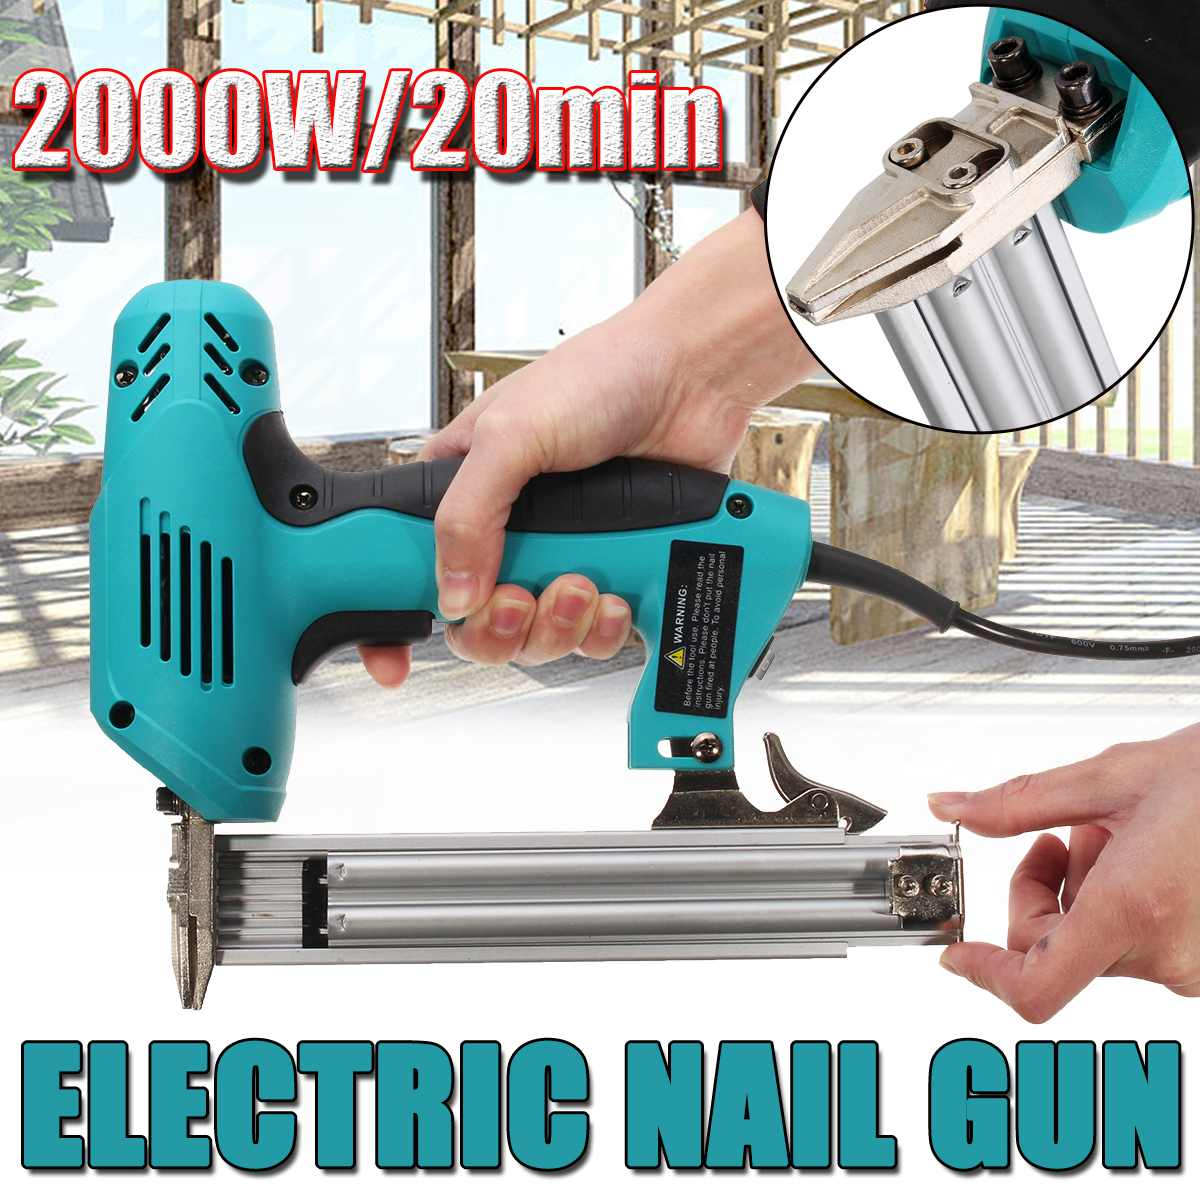 10-30mm Electric Straight Nail-Gun Heavy-Duty Woodworking Tool Electrical Staple Nail 220V 2000W